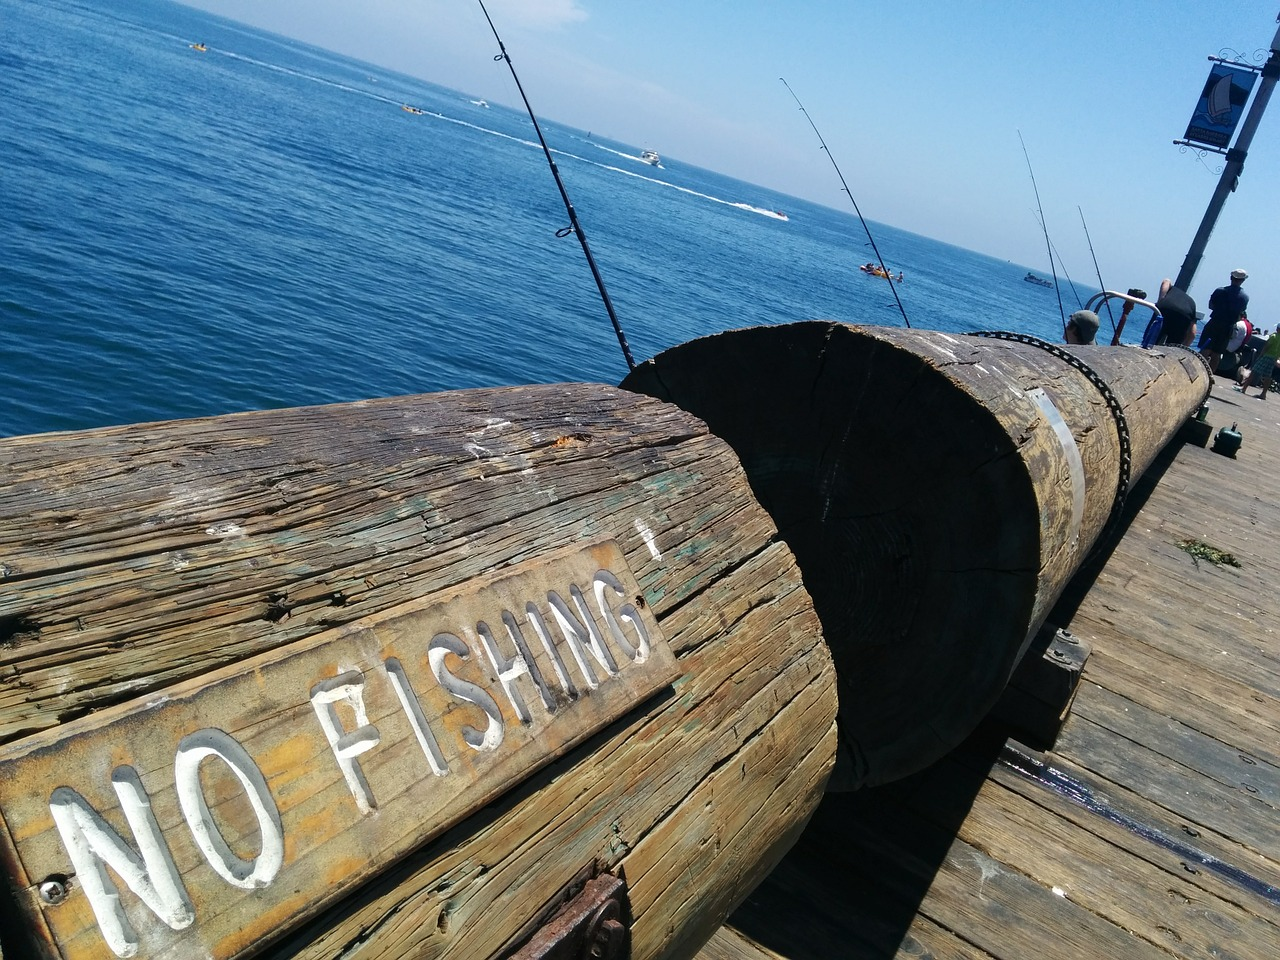 CATMEDIA Creative Services No fishing on pier